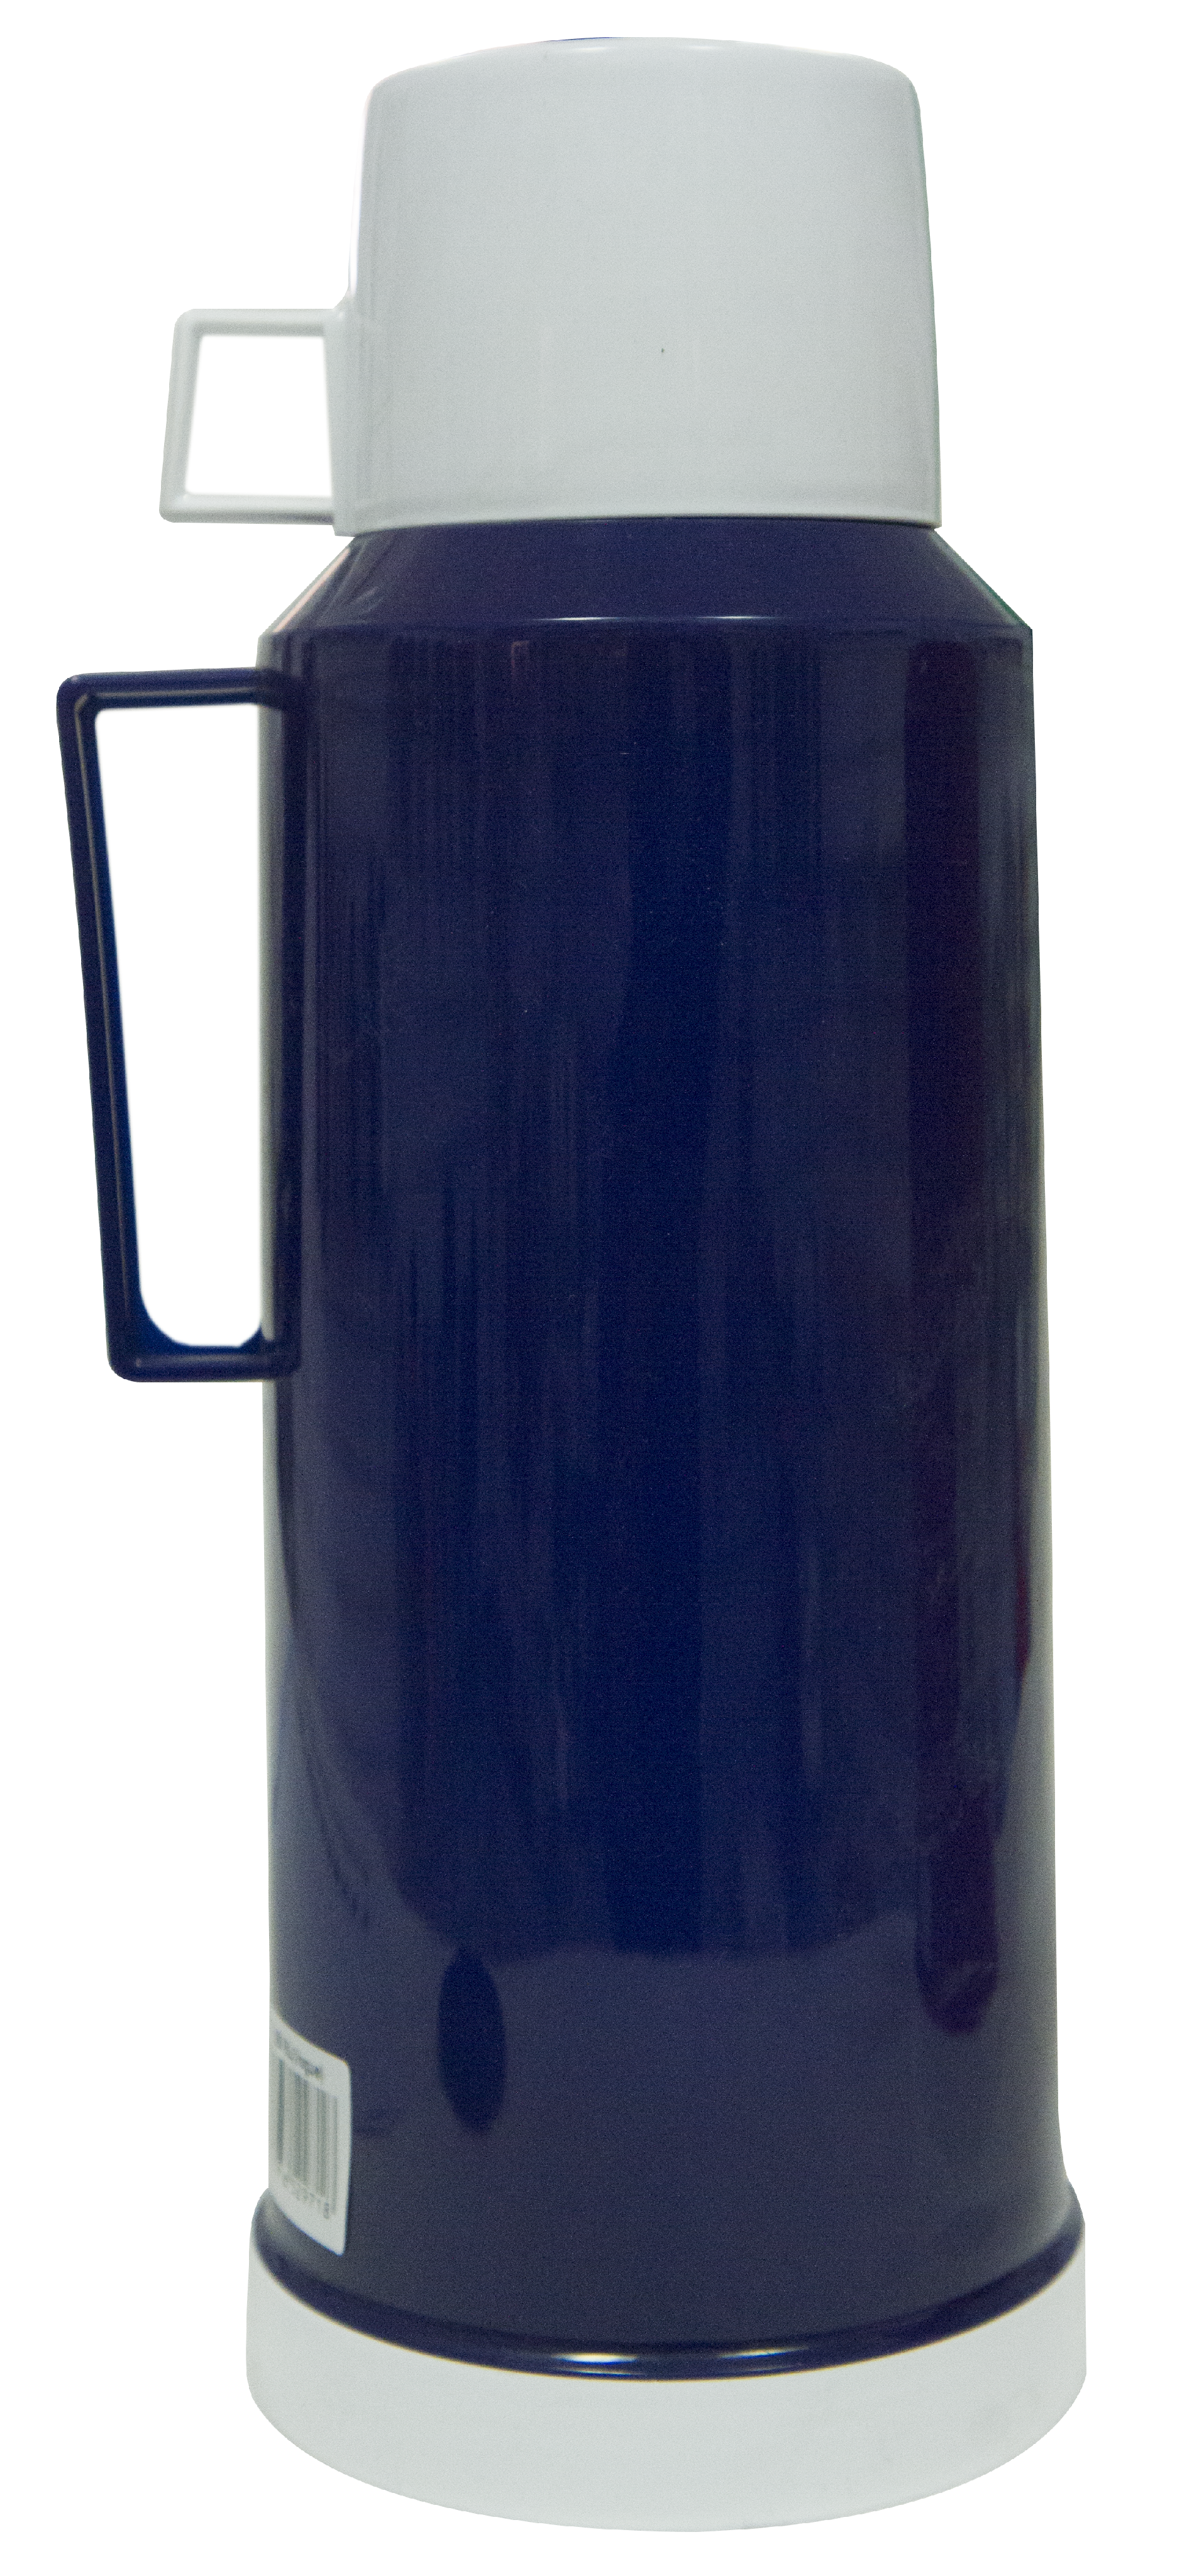 thermos thermocafe vogue glass vacuum flask 18 l blue - Glass Thermos